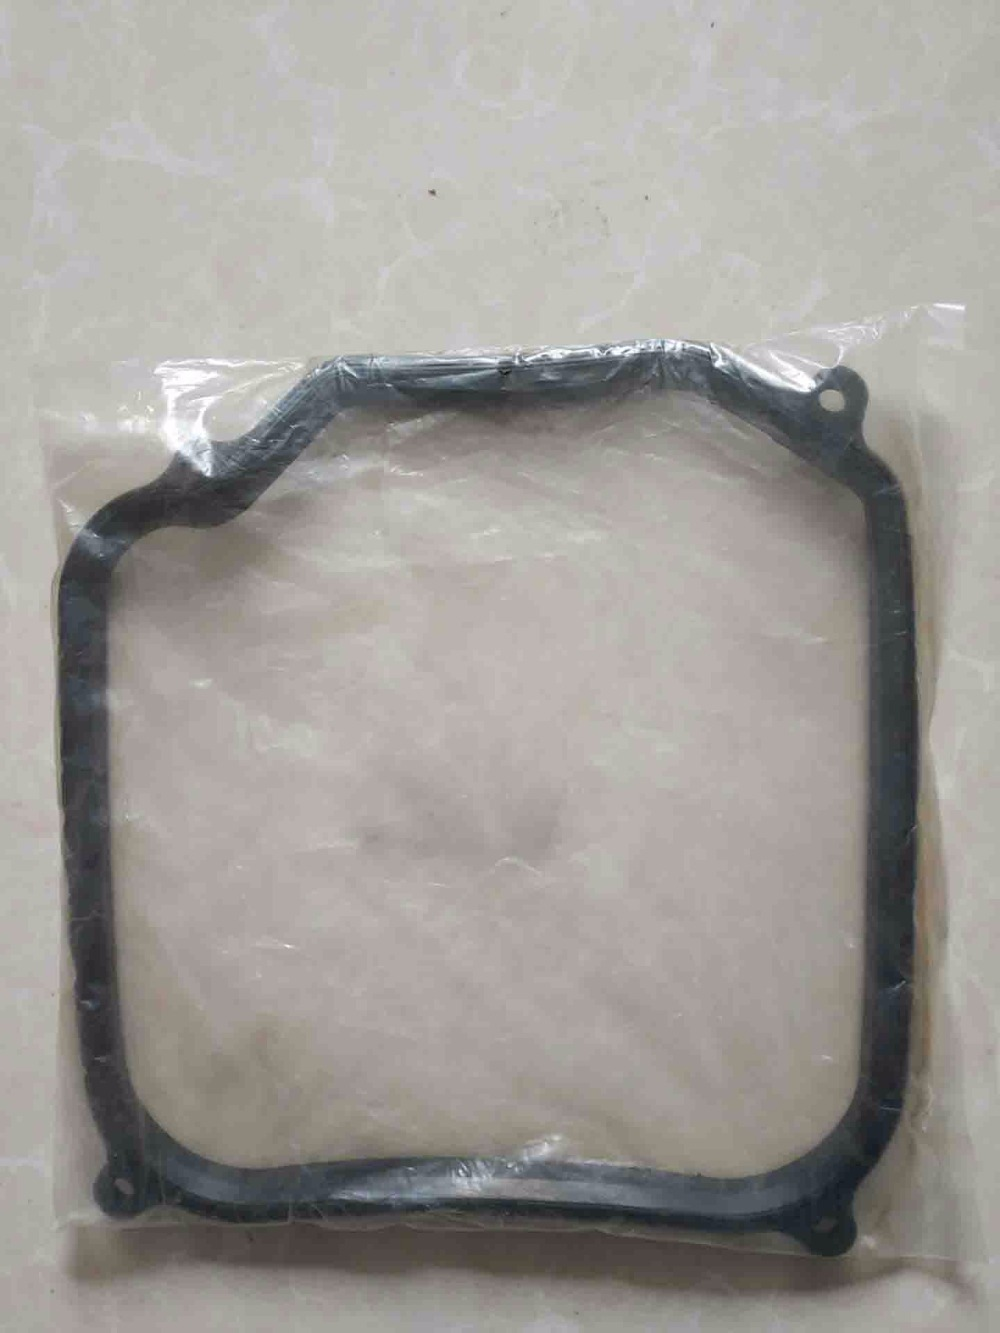 Automatic Transaxle Pan Gasket 096321370 For Vw Volkswagen Oem 93 05 Oil Jaguar X Type Jetta In Valves Parts From Automobiles Motorcycles On Alibaba